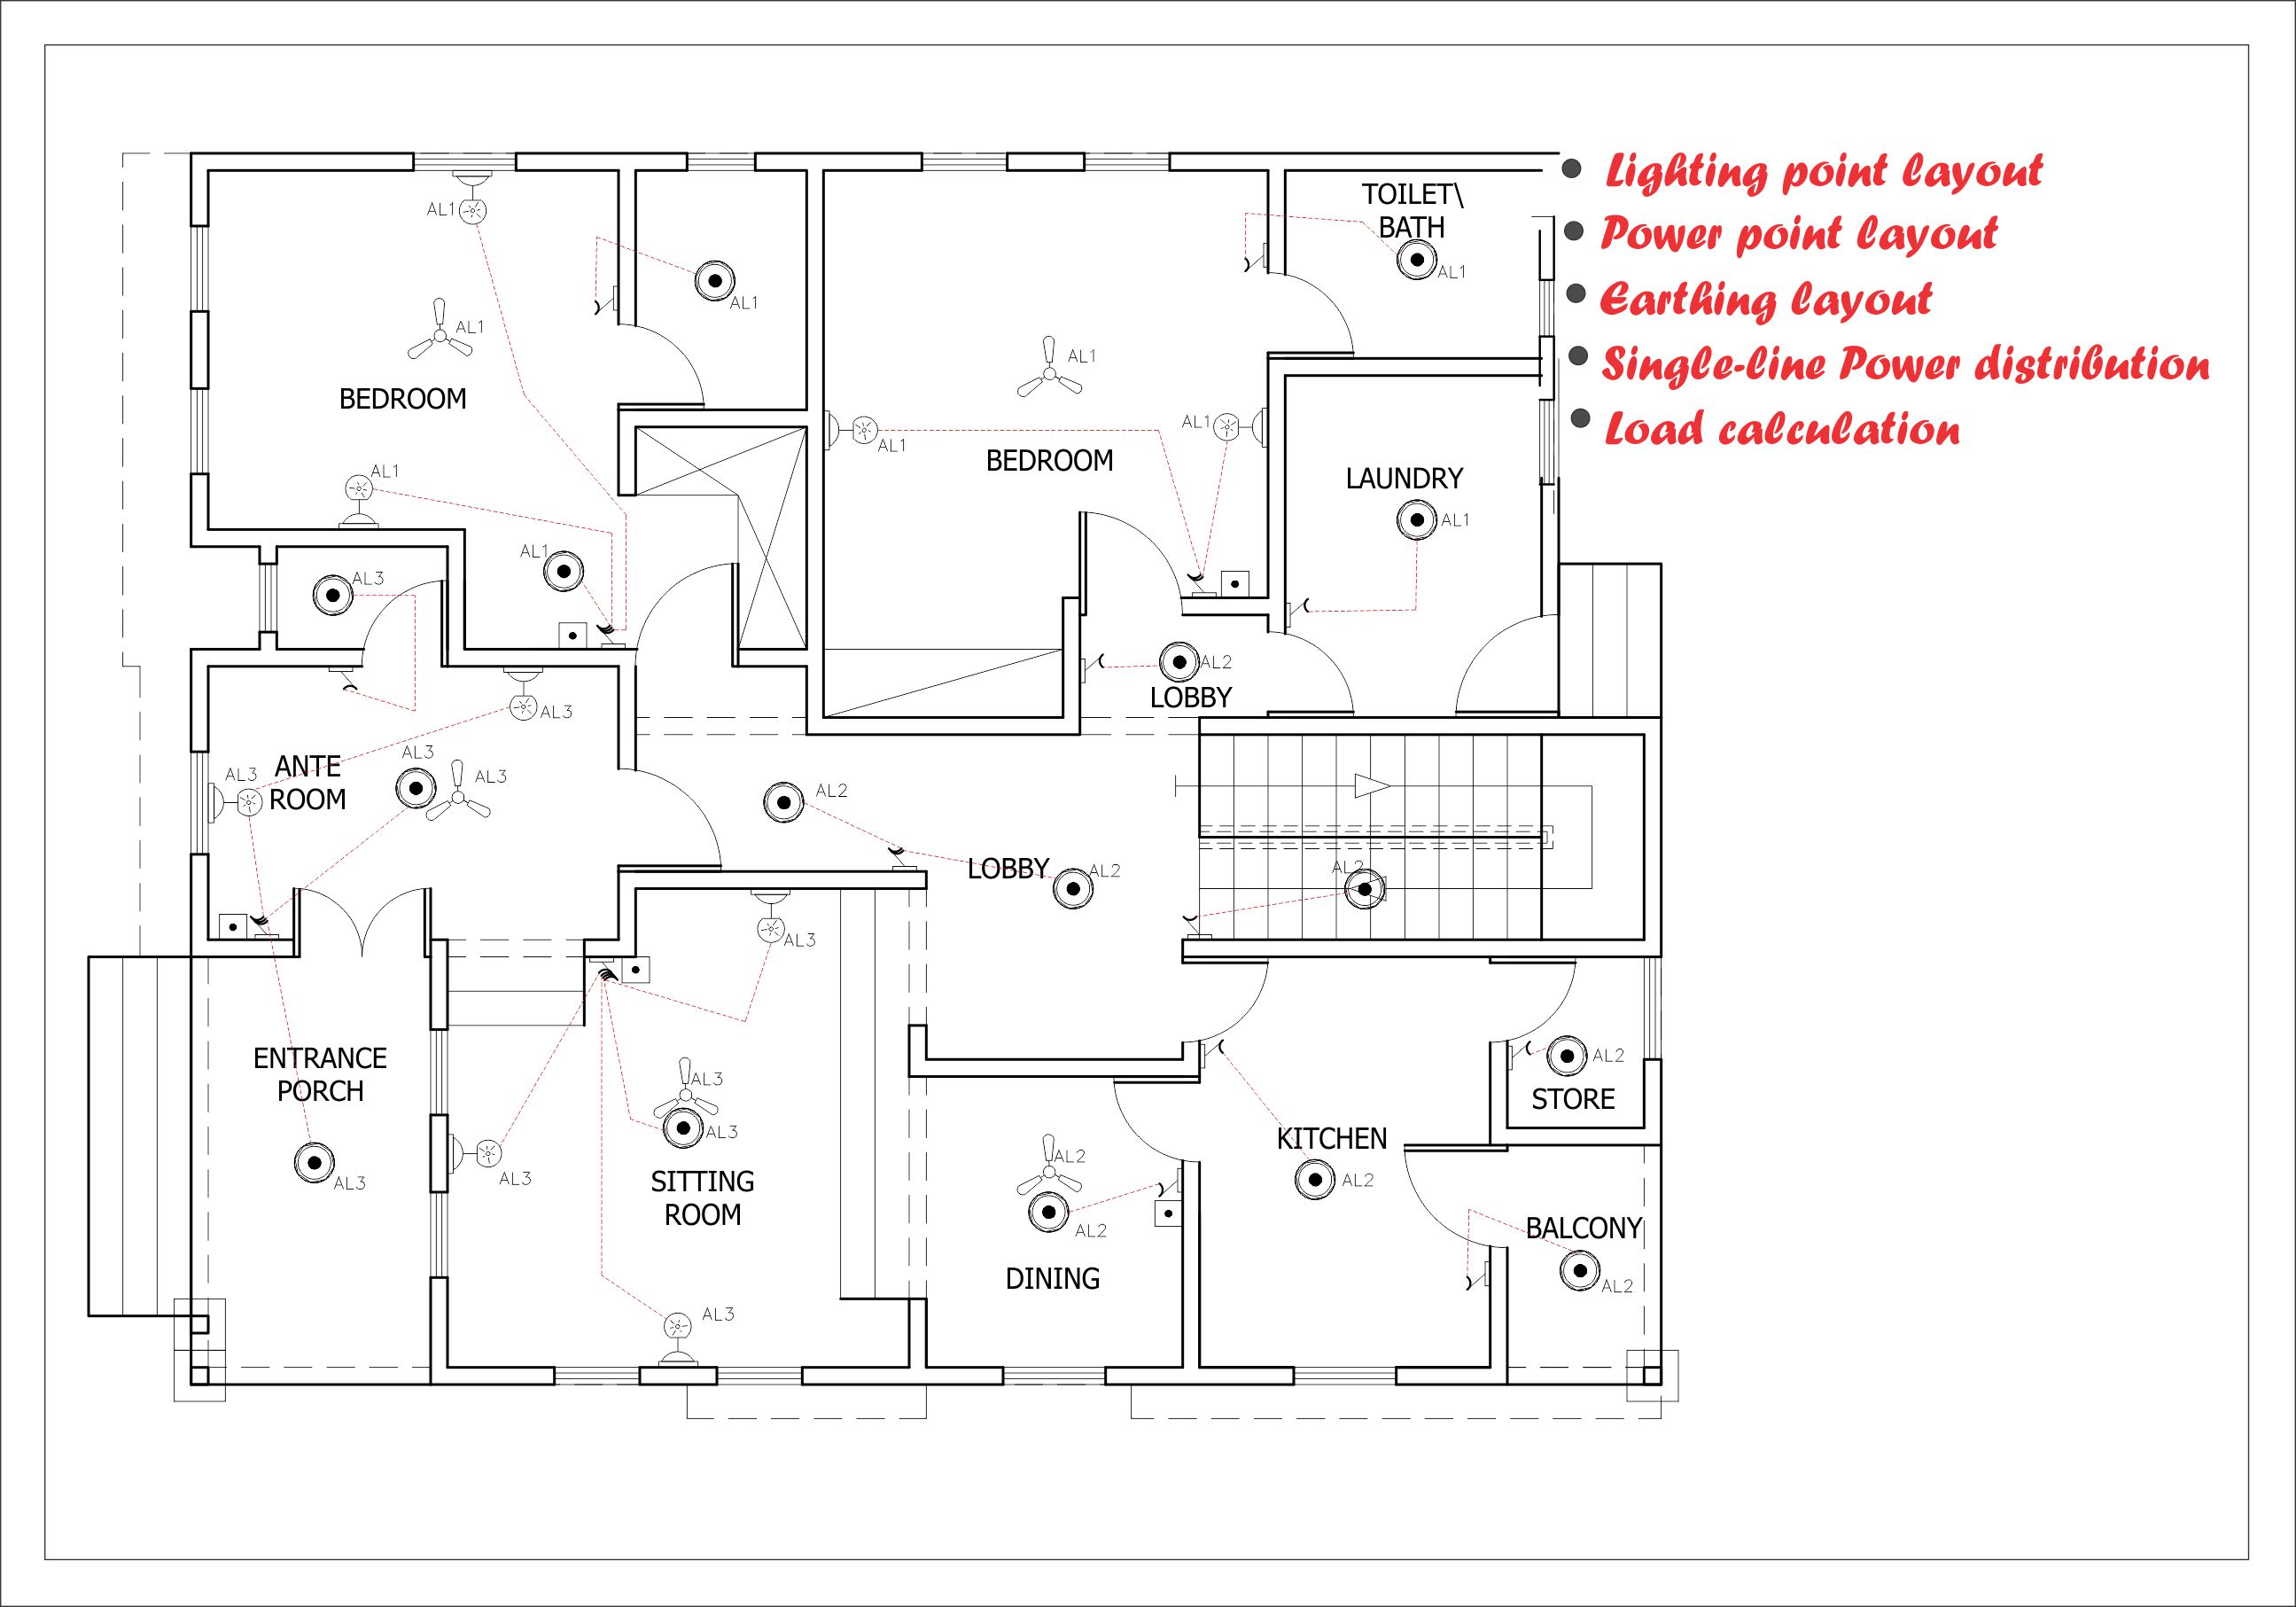 House Wiring Diagram Dwg Disconnect Electrical Motor Connection Diagram For Wiring Diagram Schematics